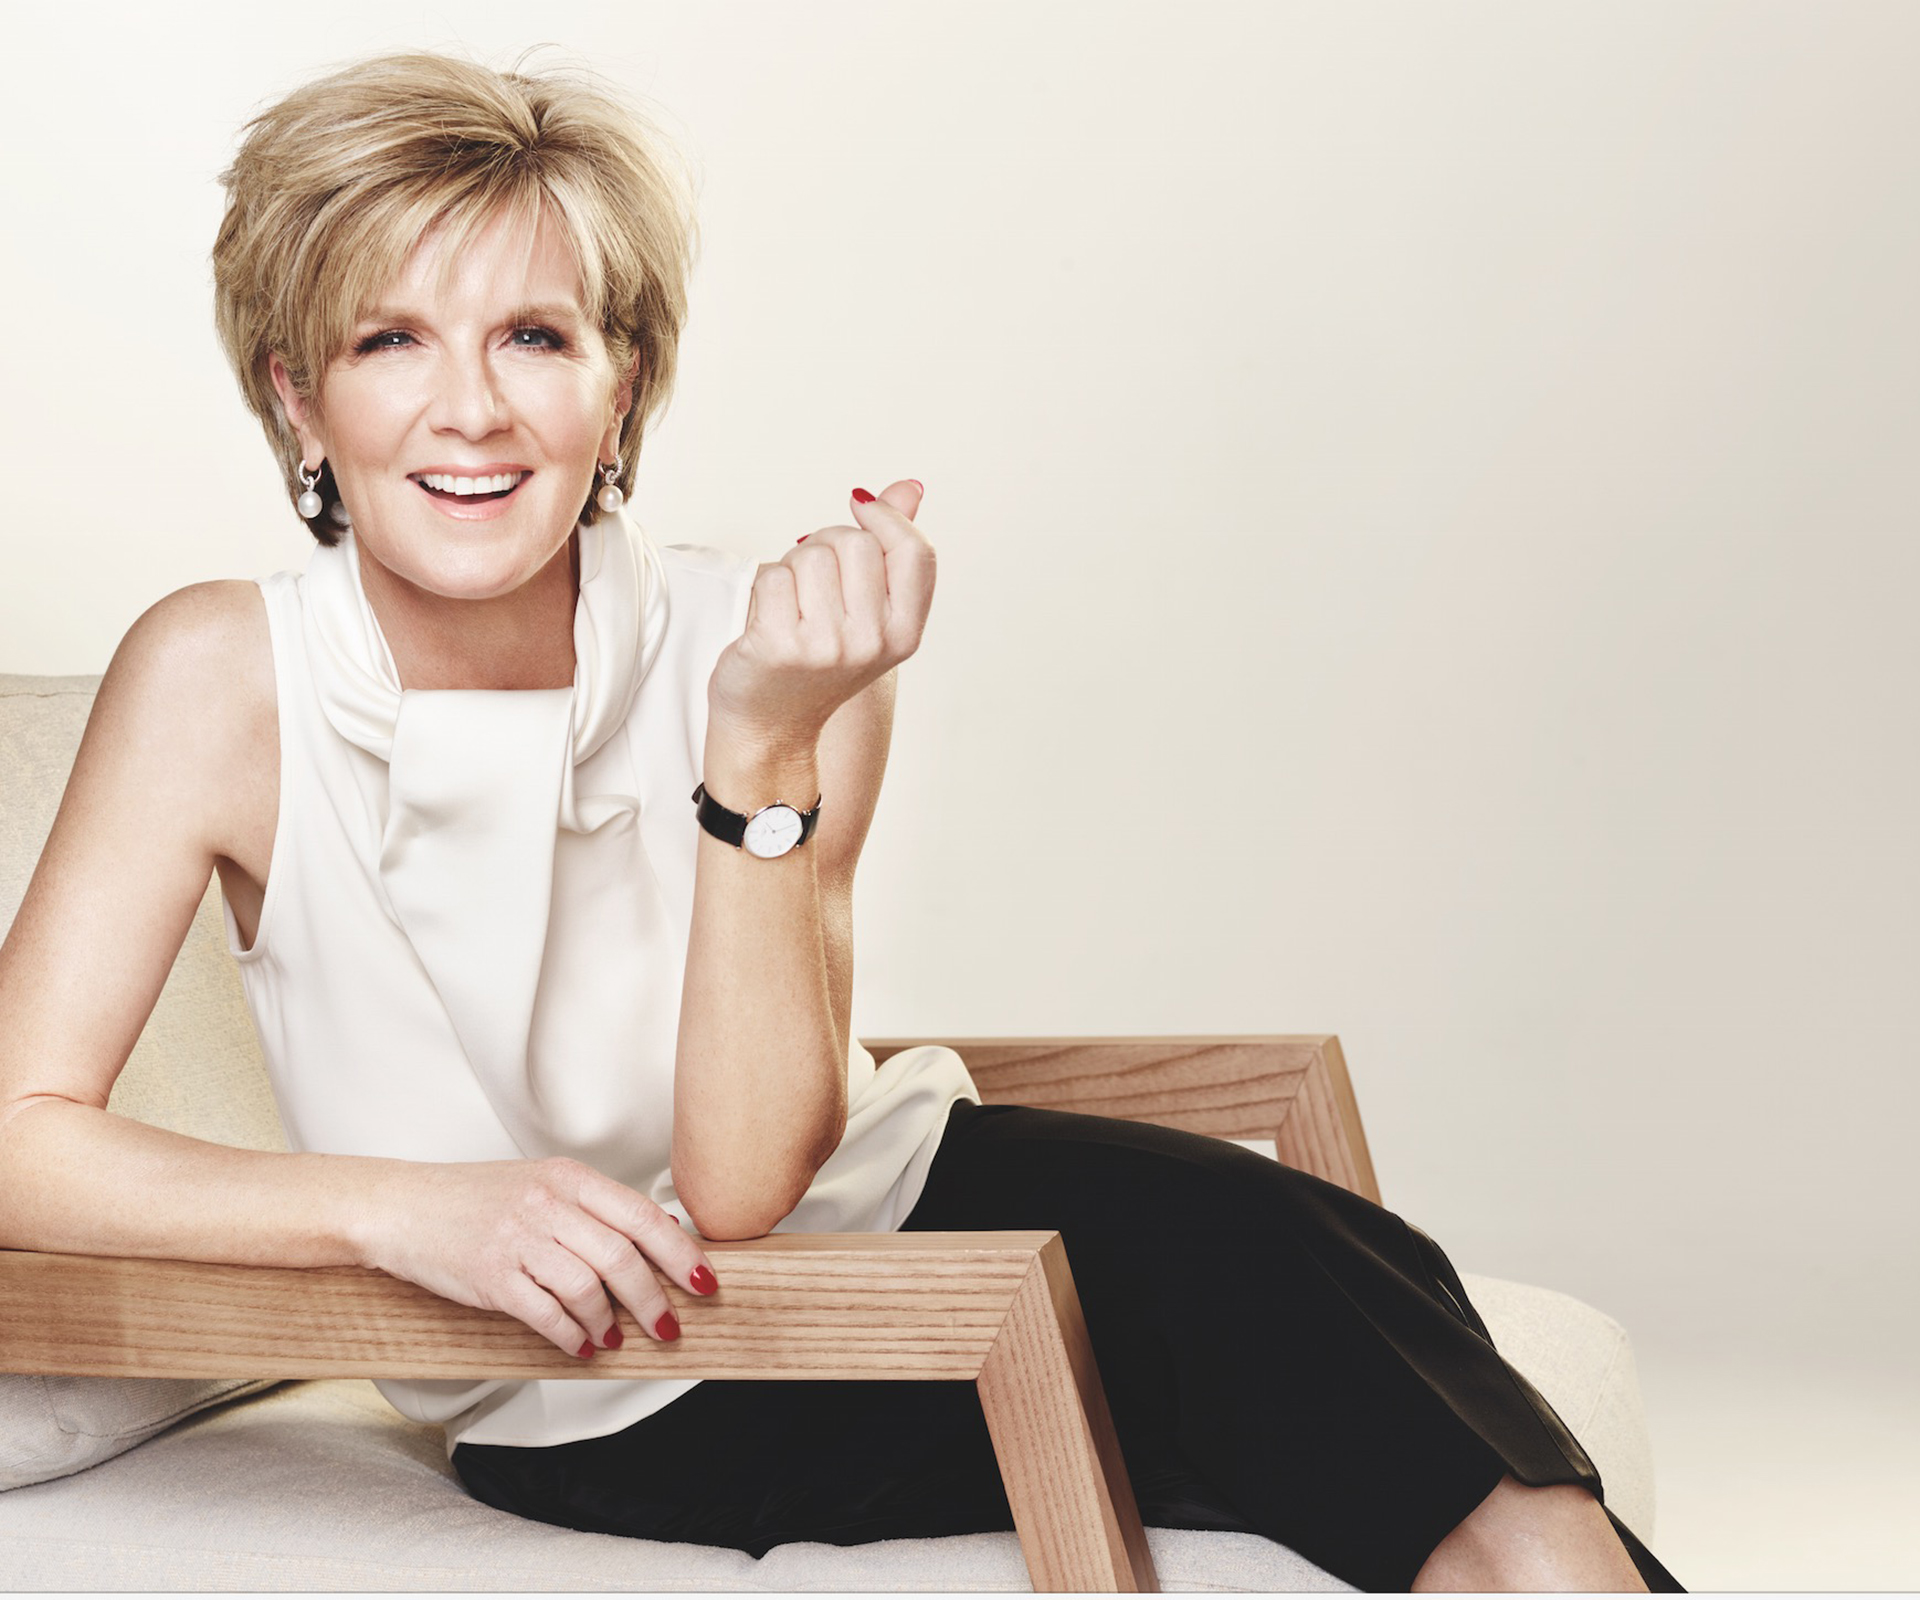 julie bishop - photo #10